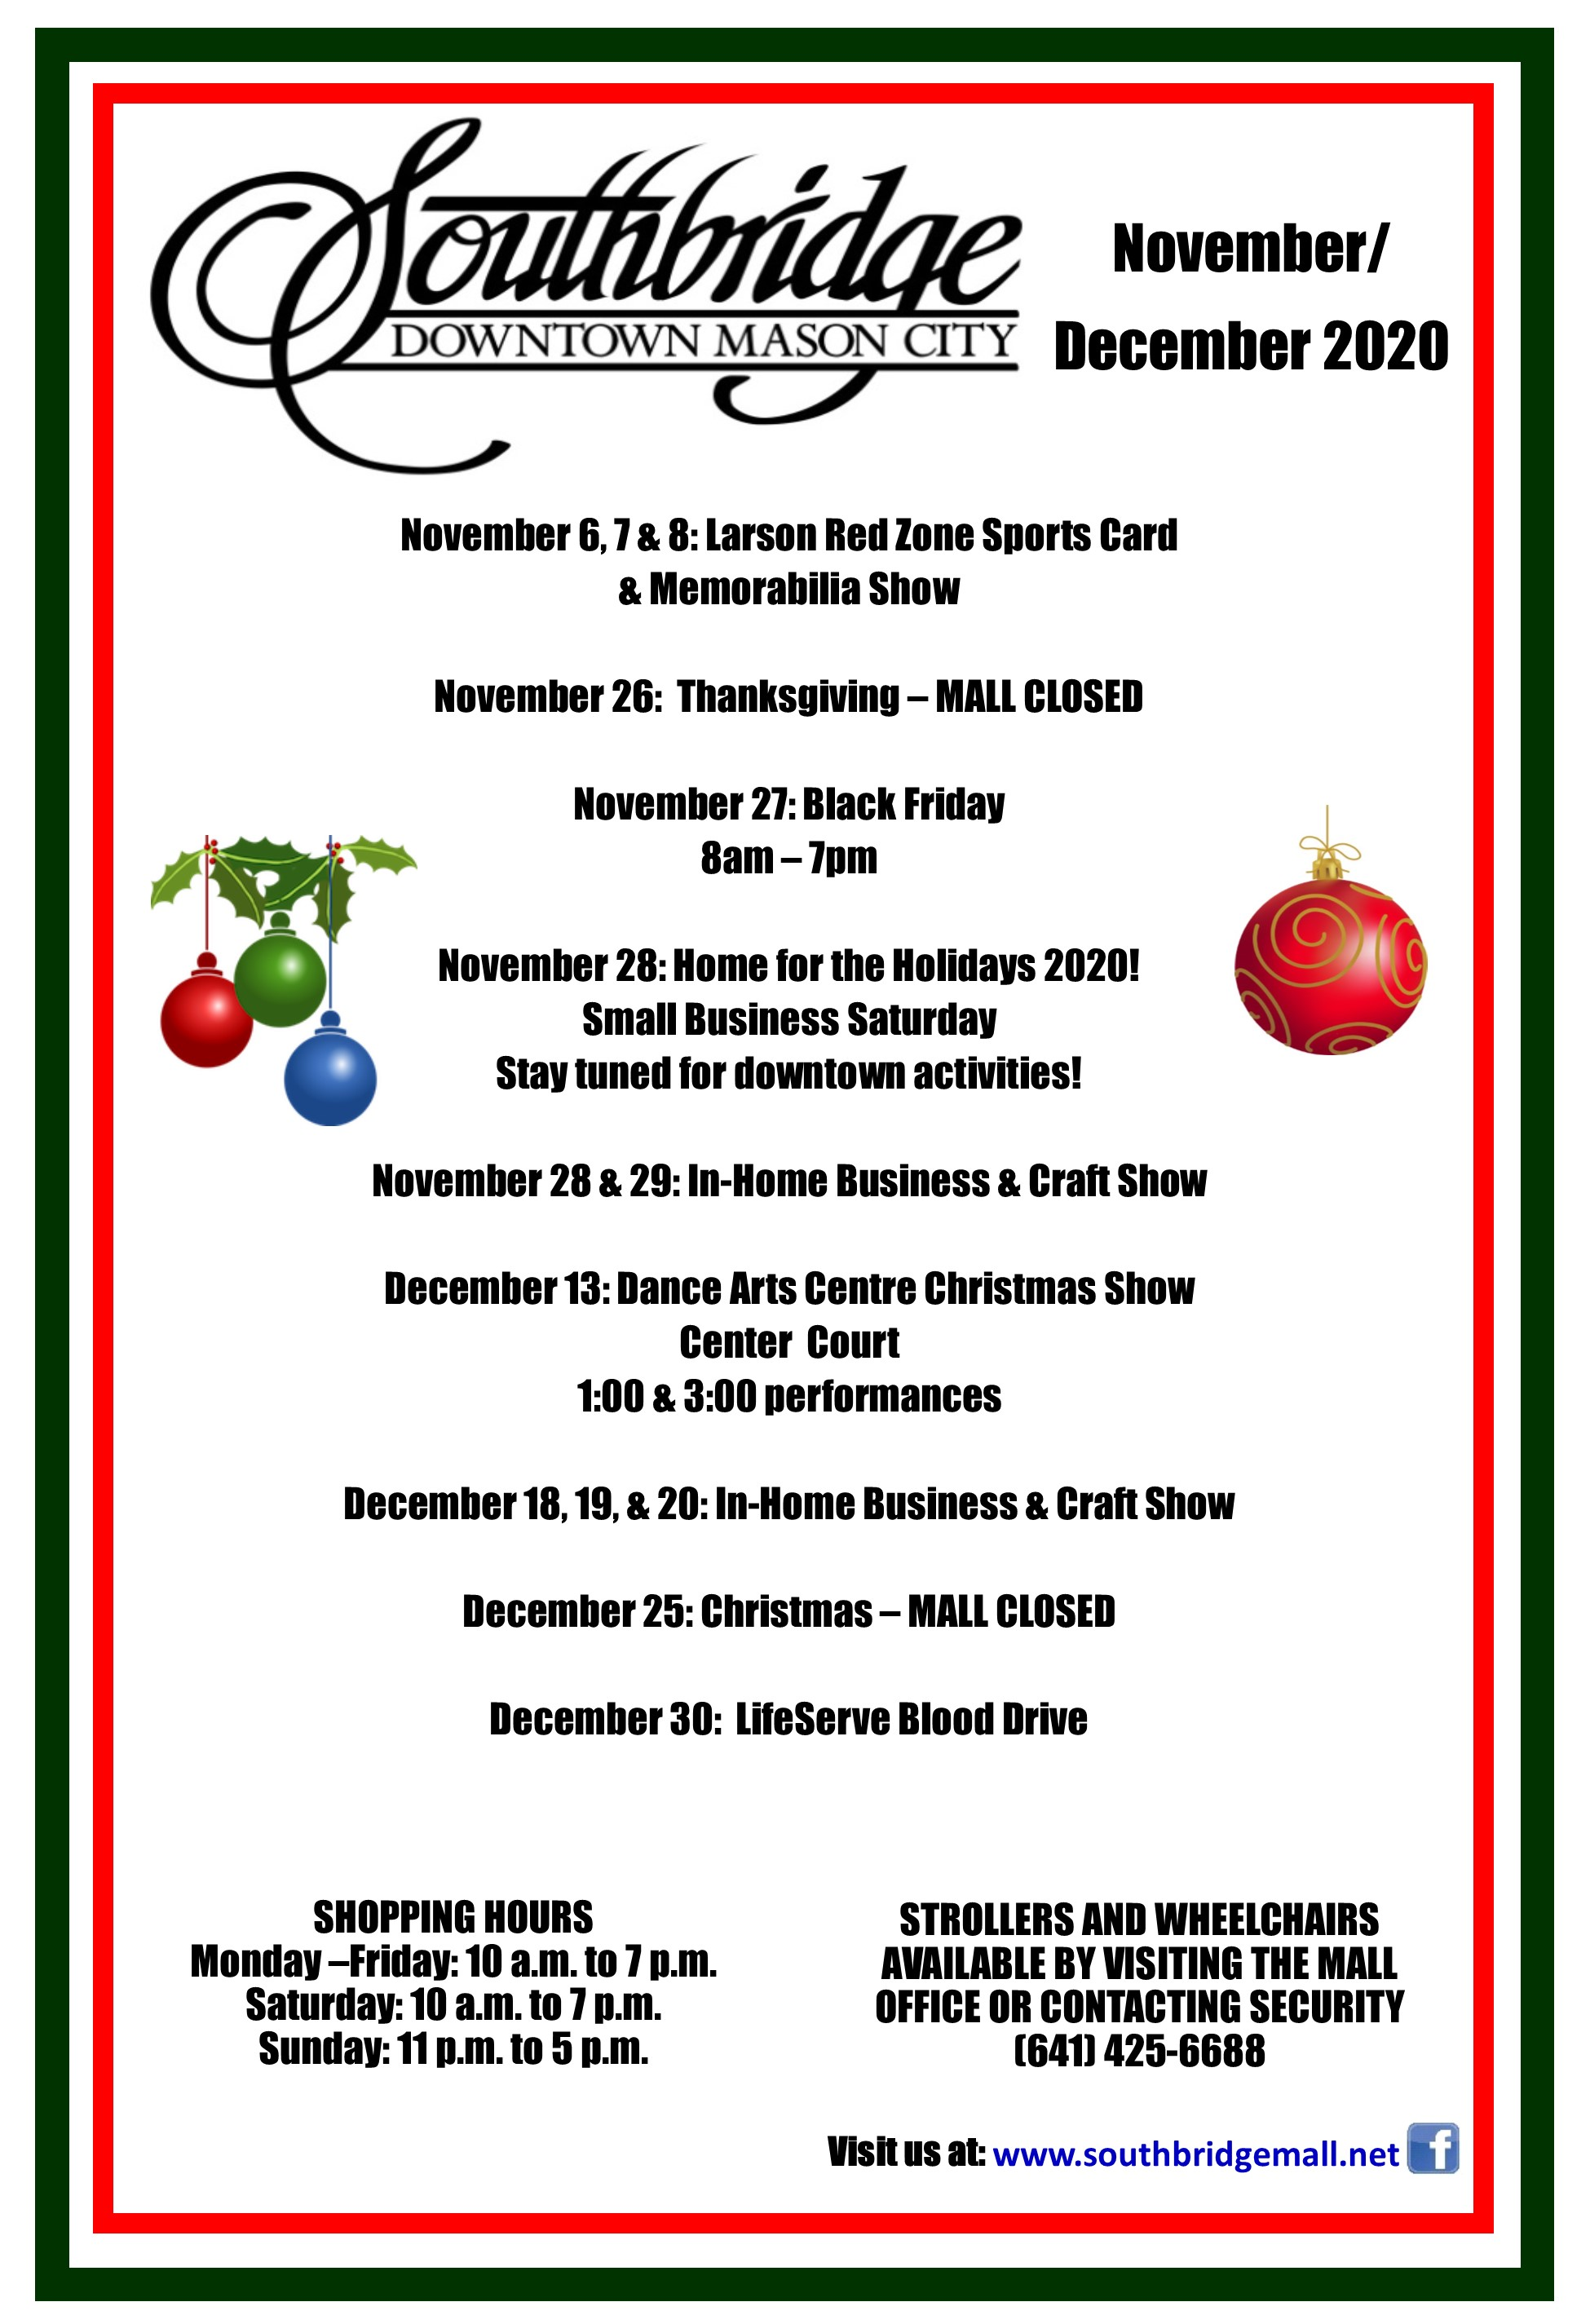 November and December 2020 Southbridge Mall events